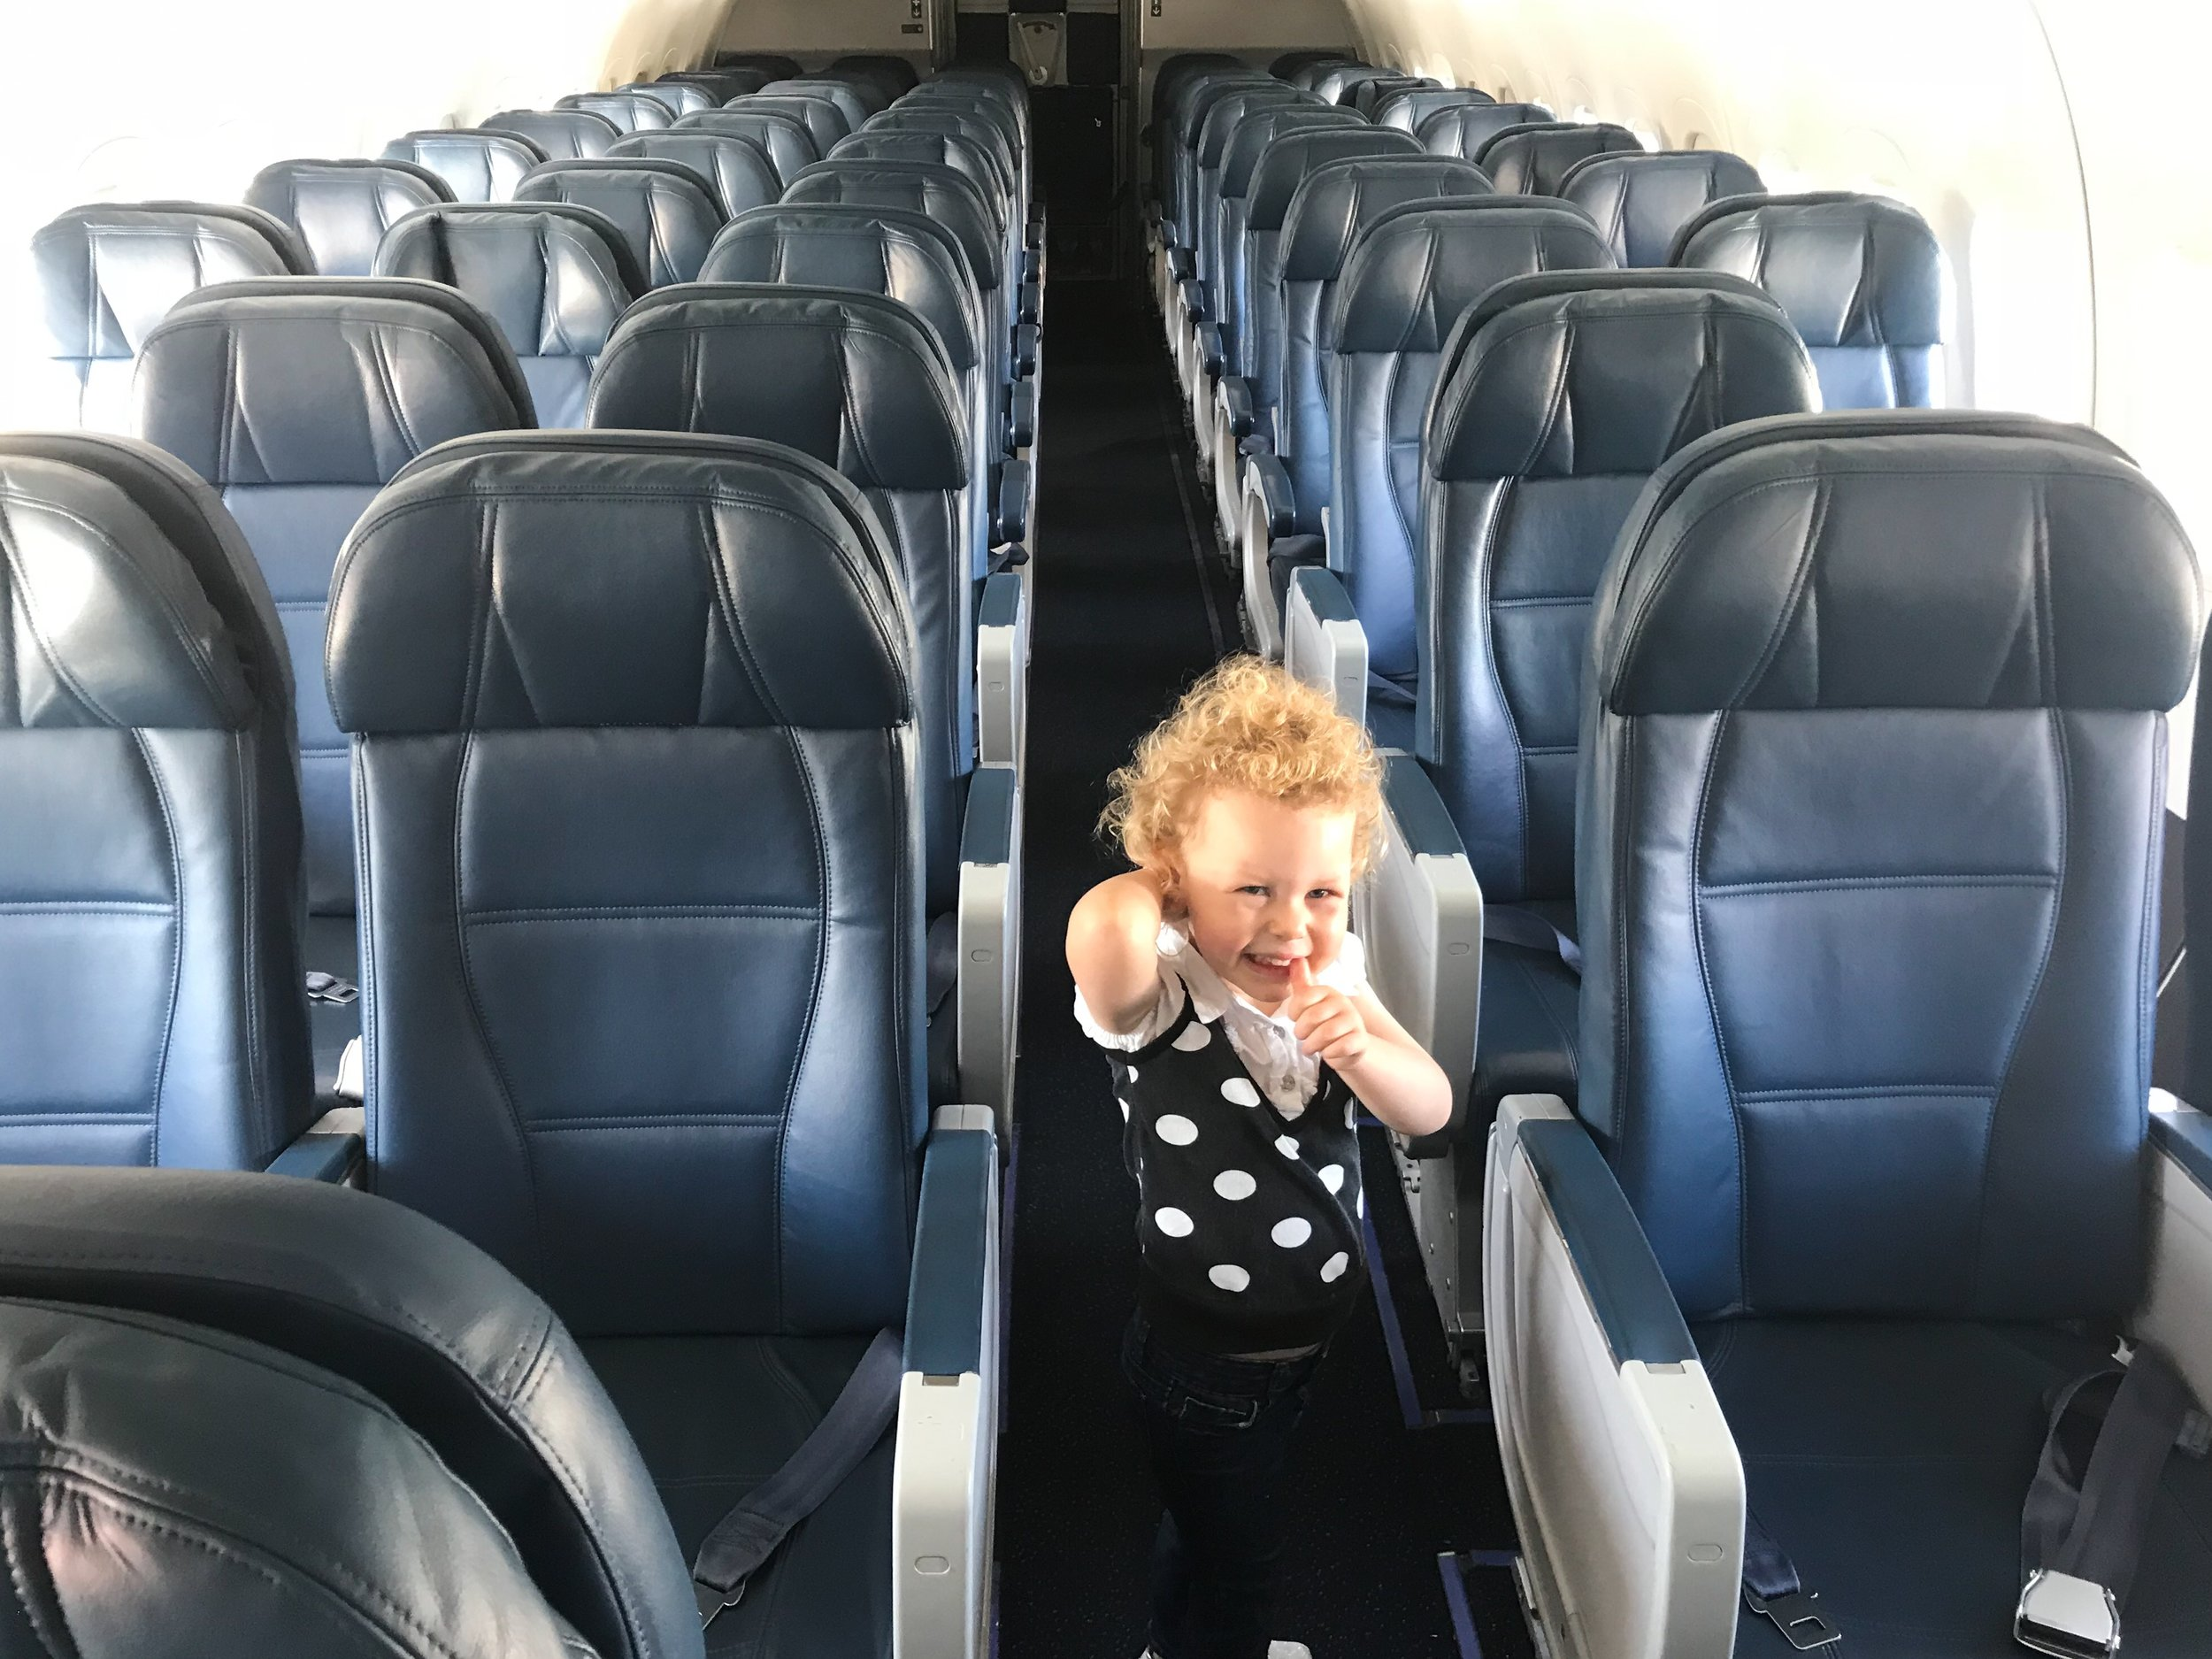 Delta allows families traveling with small children to board early.